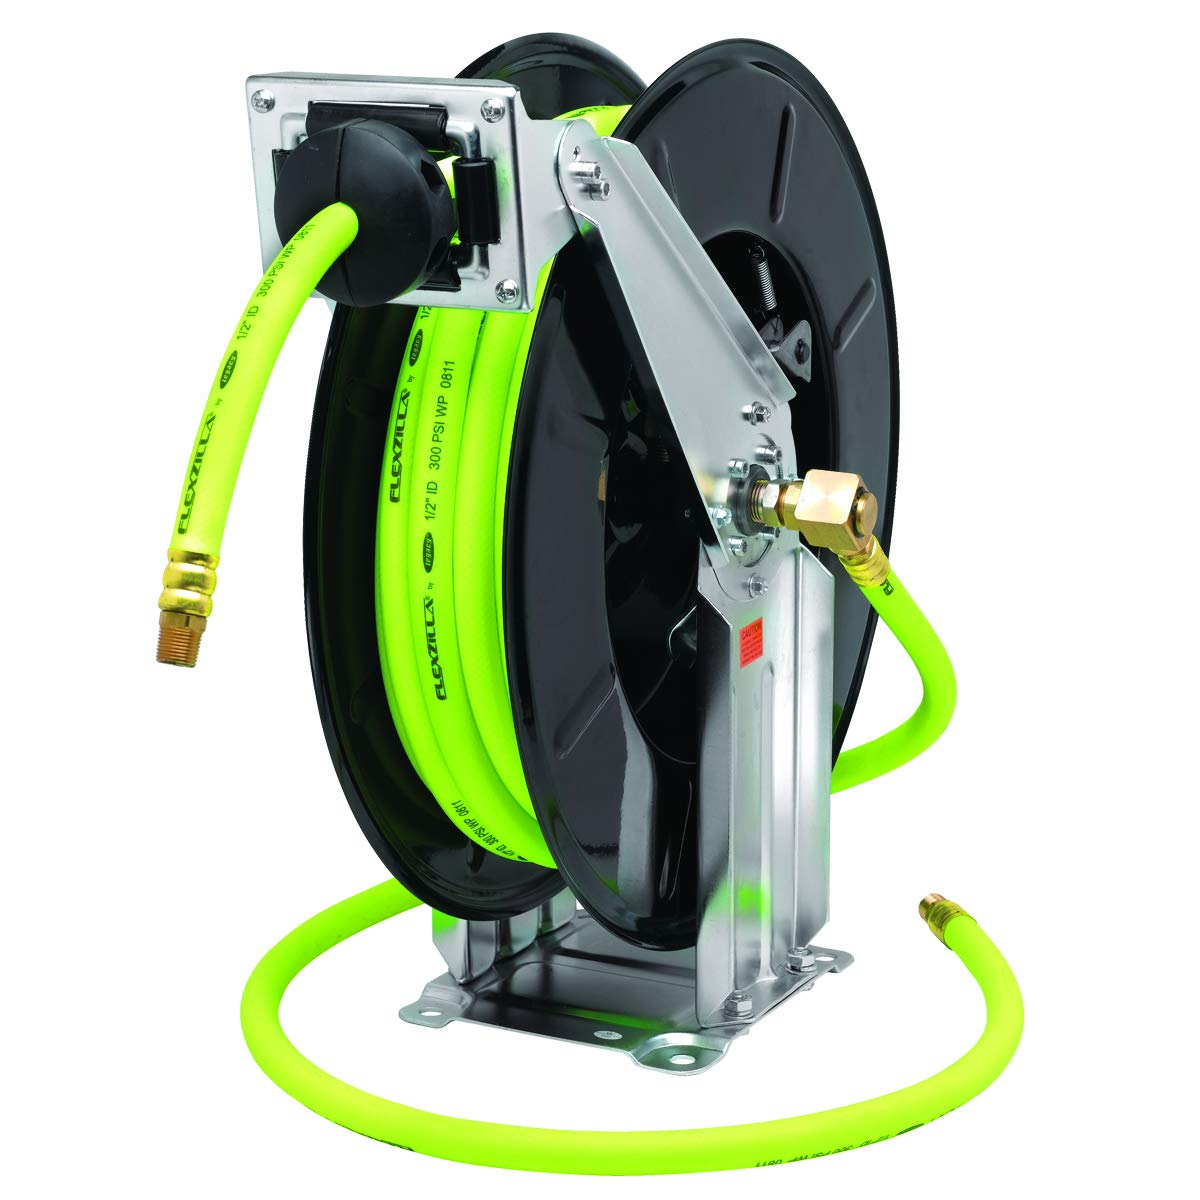 Flexzilla Retractable Open Face Dual Arm Air Hose Reel, 1/2 in. x 50 ft, Heavy Duty, Lightweight, Hybrid, ZillaGreen - L8741FZ by Flexzilla (Image #1)